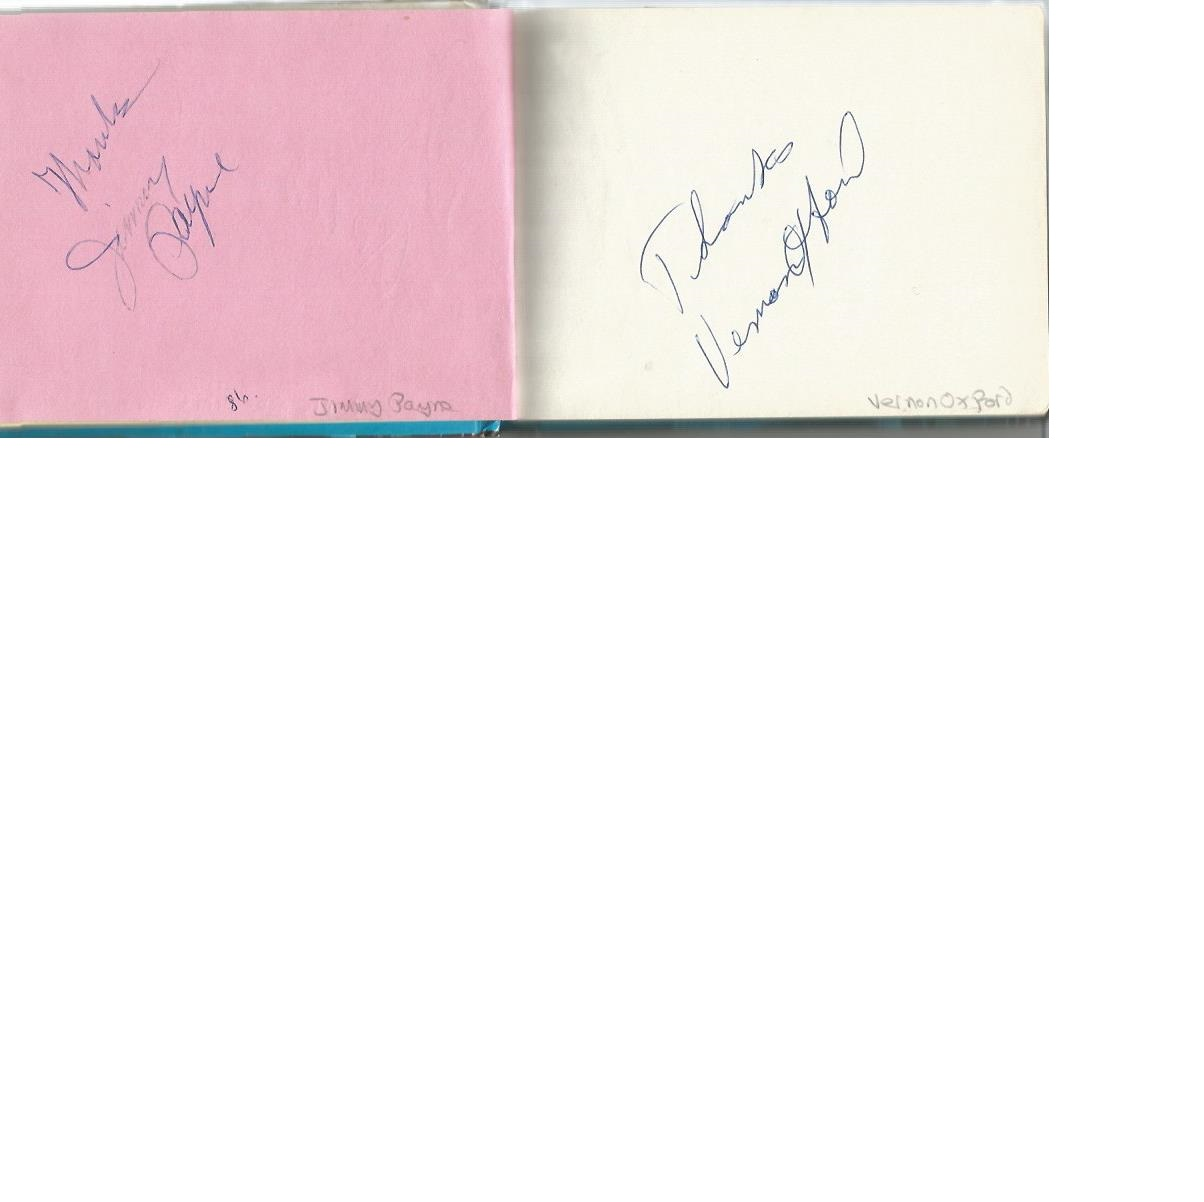 Lot 25 - Music and Entertainment Autograph book. Signatures include PJ Christie, Ronnie Prophet, Sally